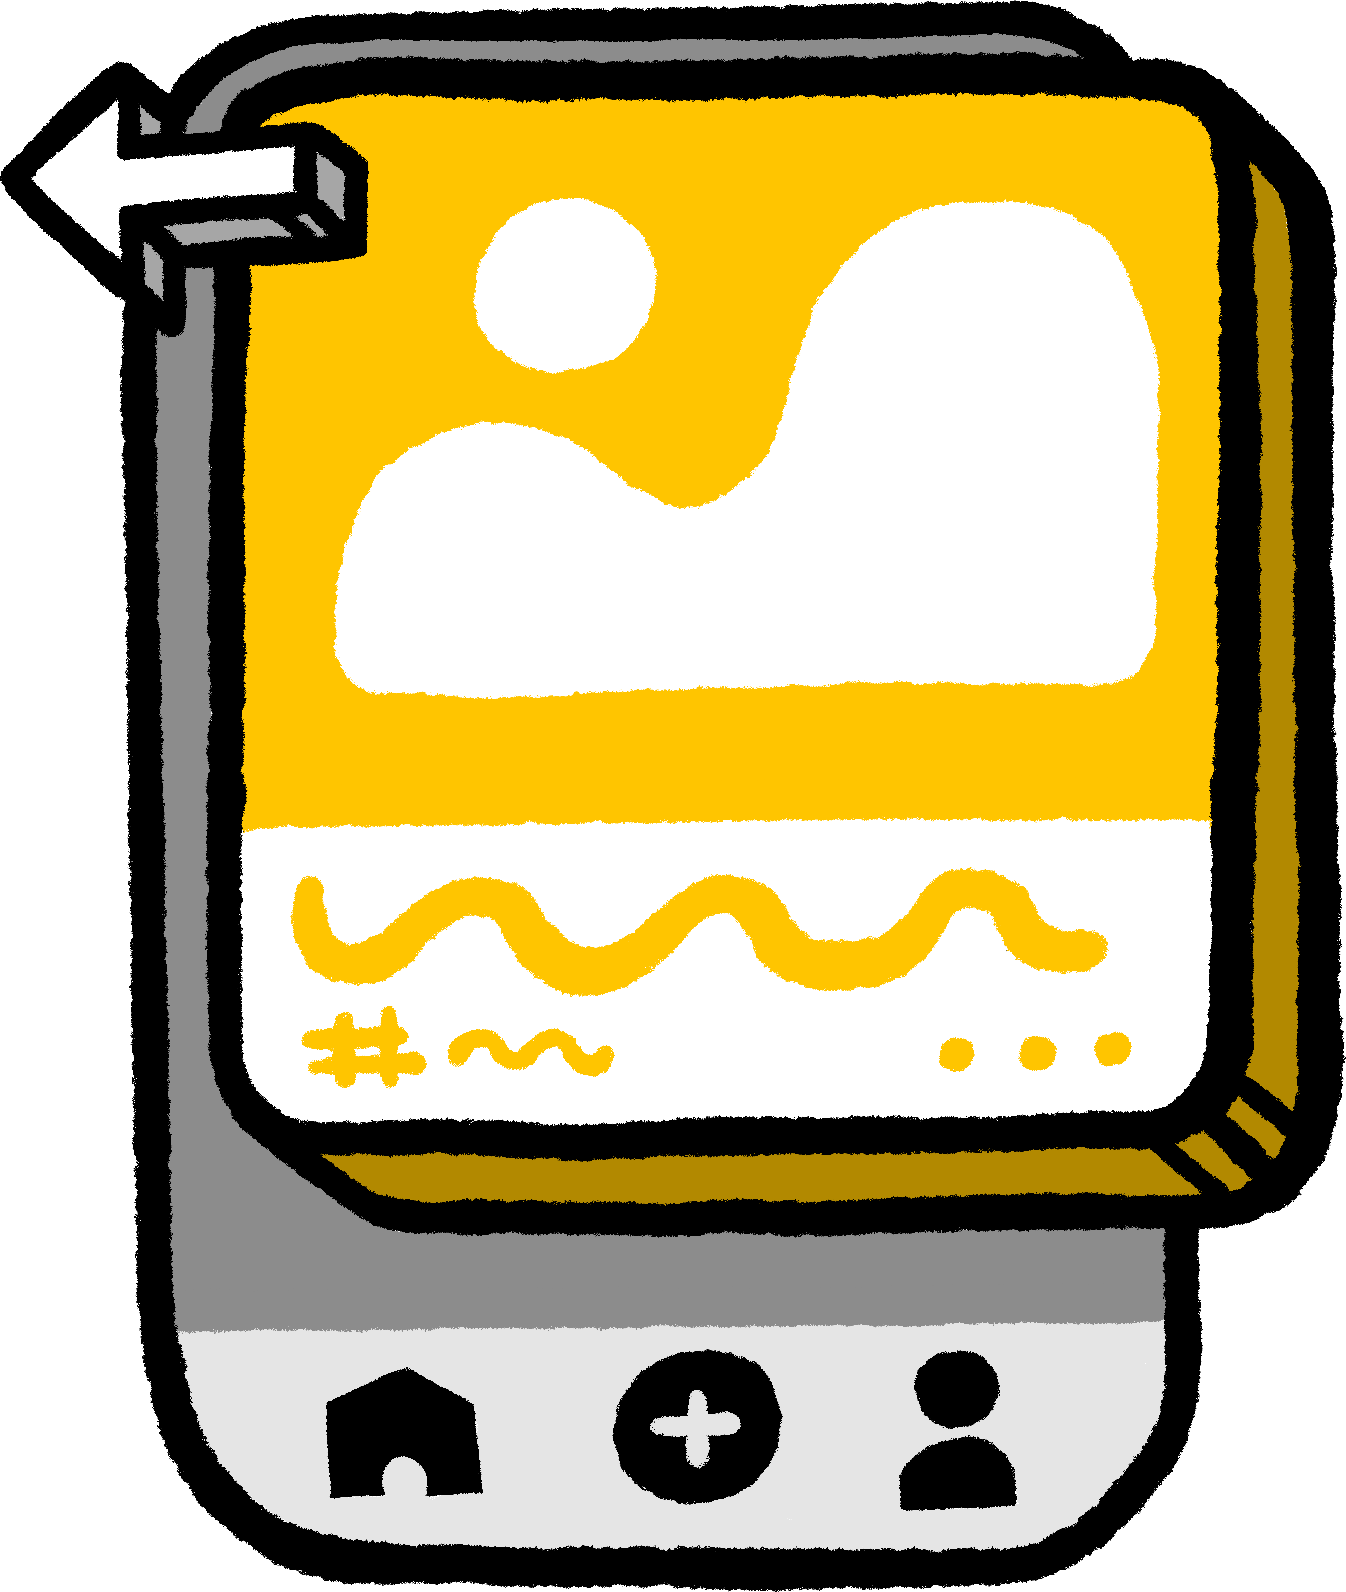 Illustration of an app with a card component.